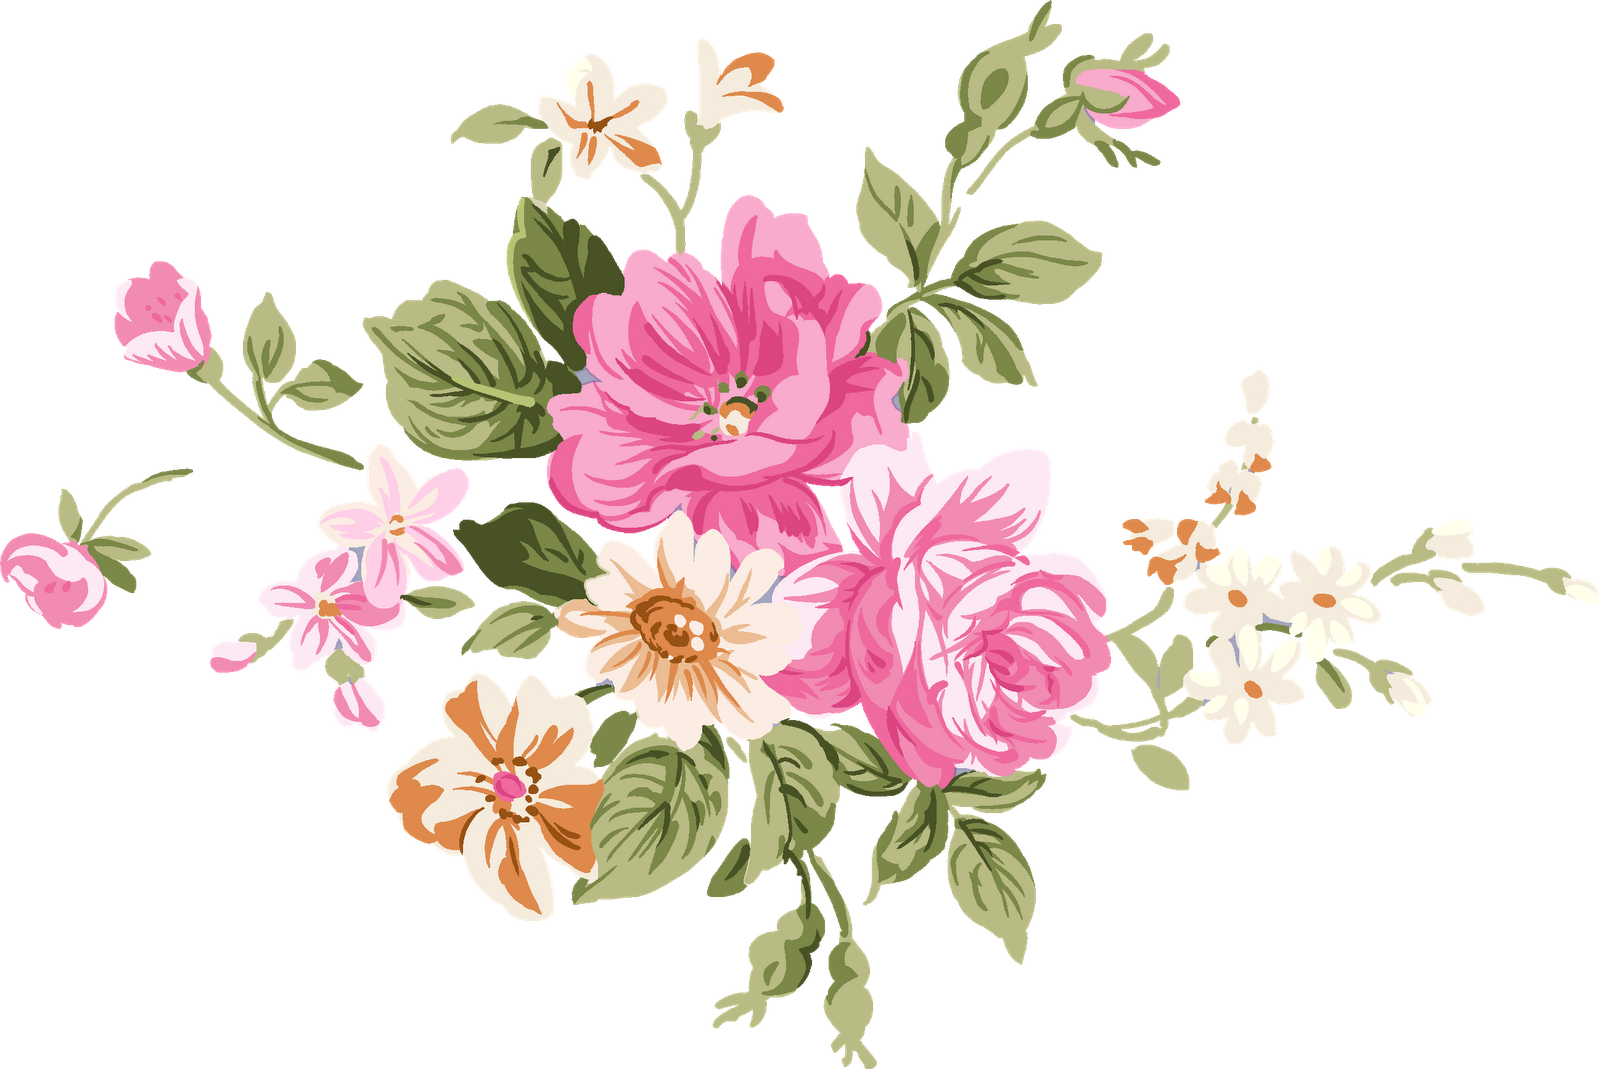 Chinese flowers png. Watercolour painting clip art